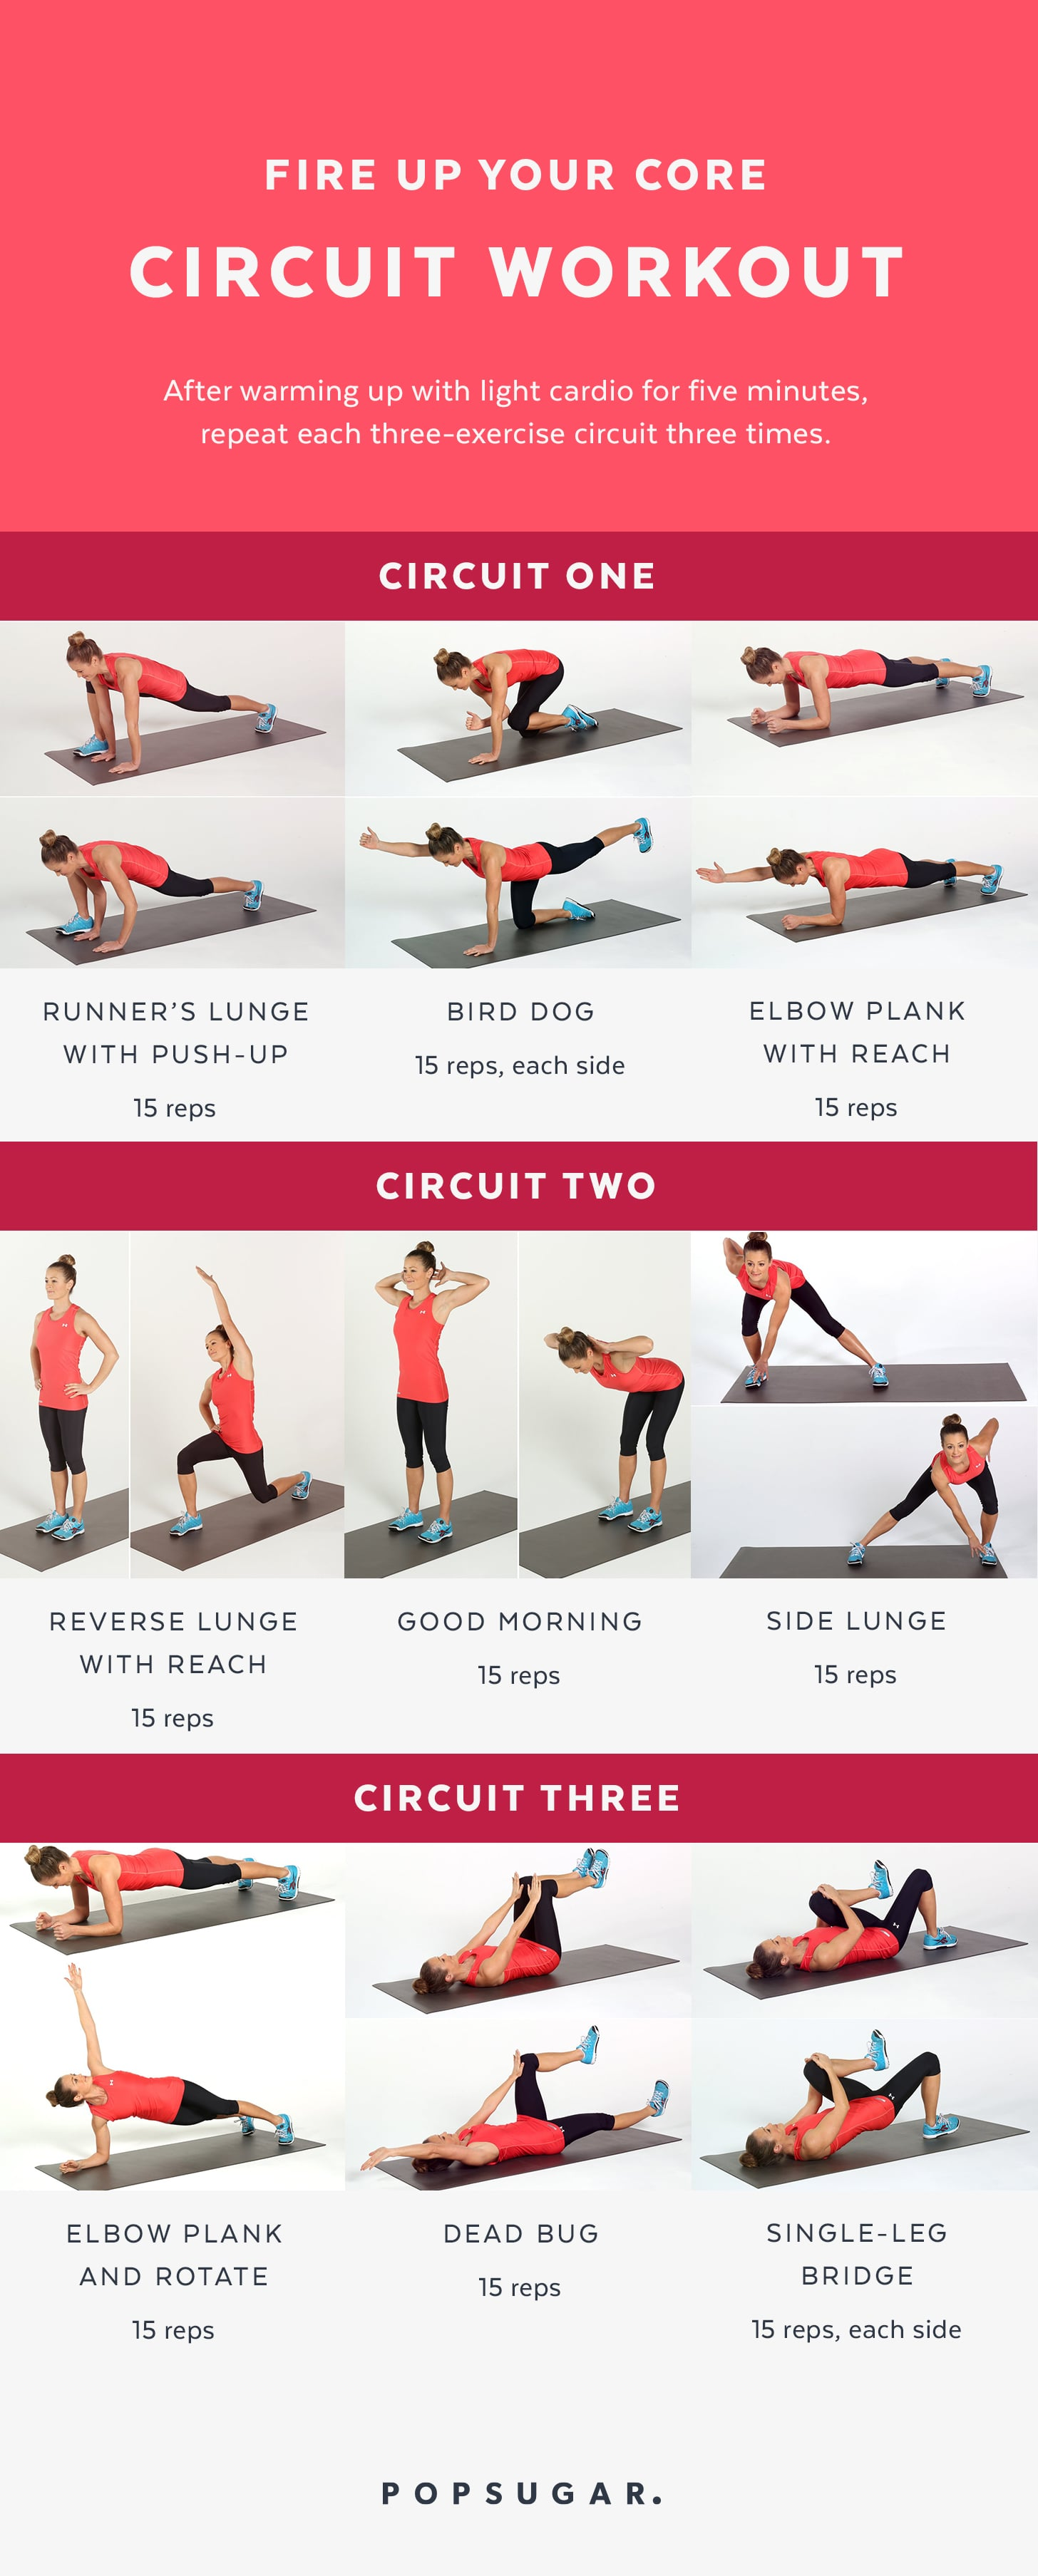 Get Ready to Work Your Abs and Fire Up Your Core